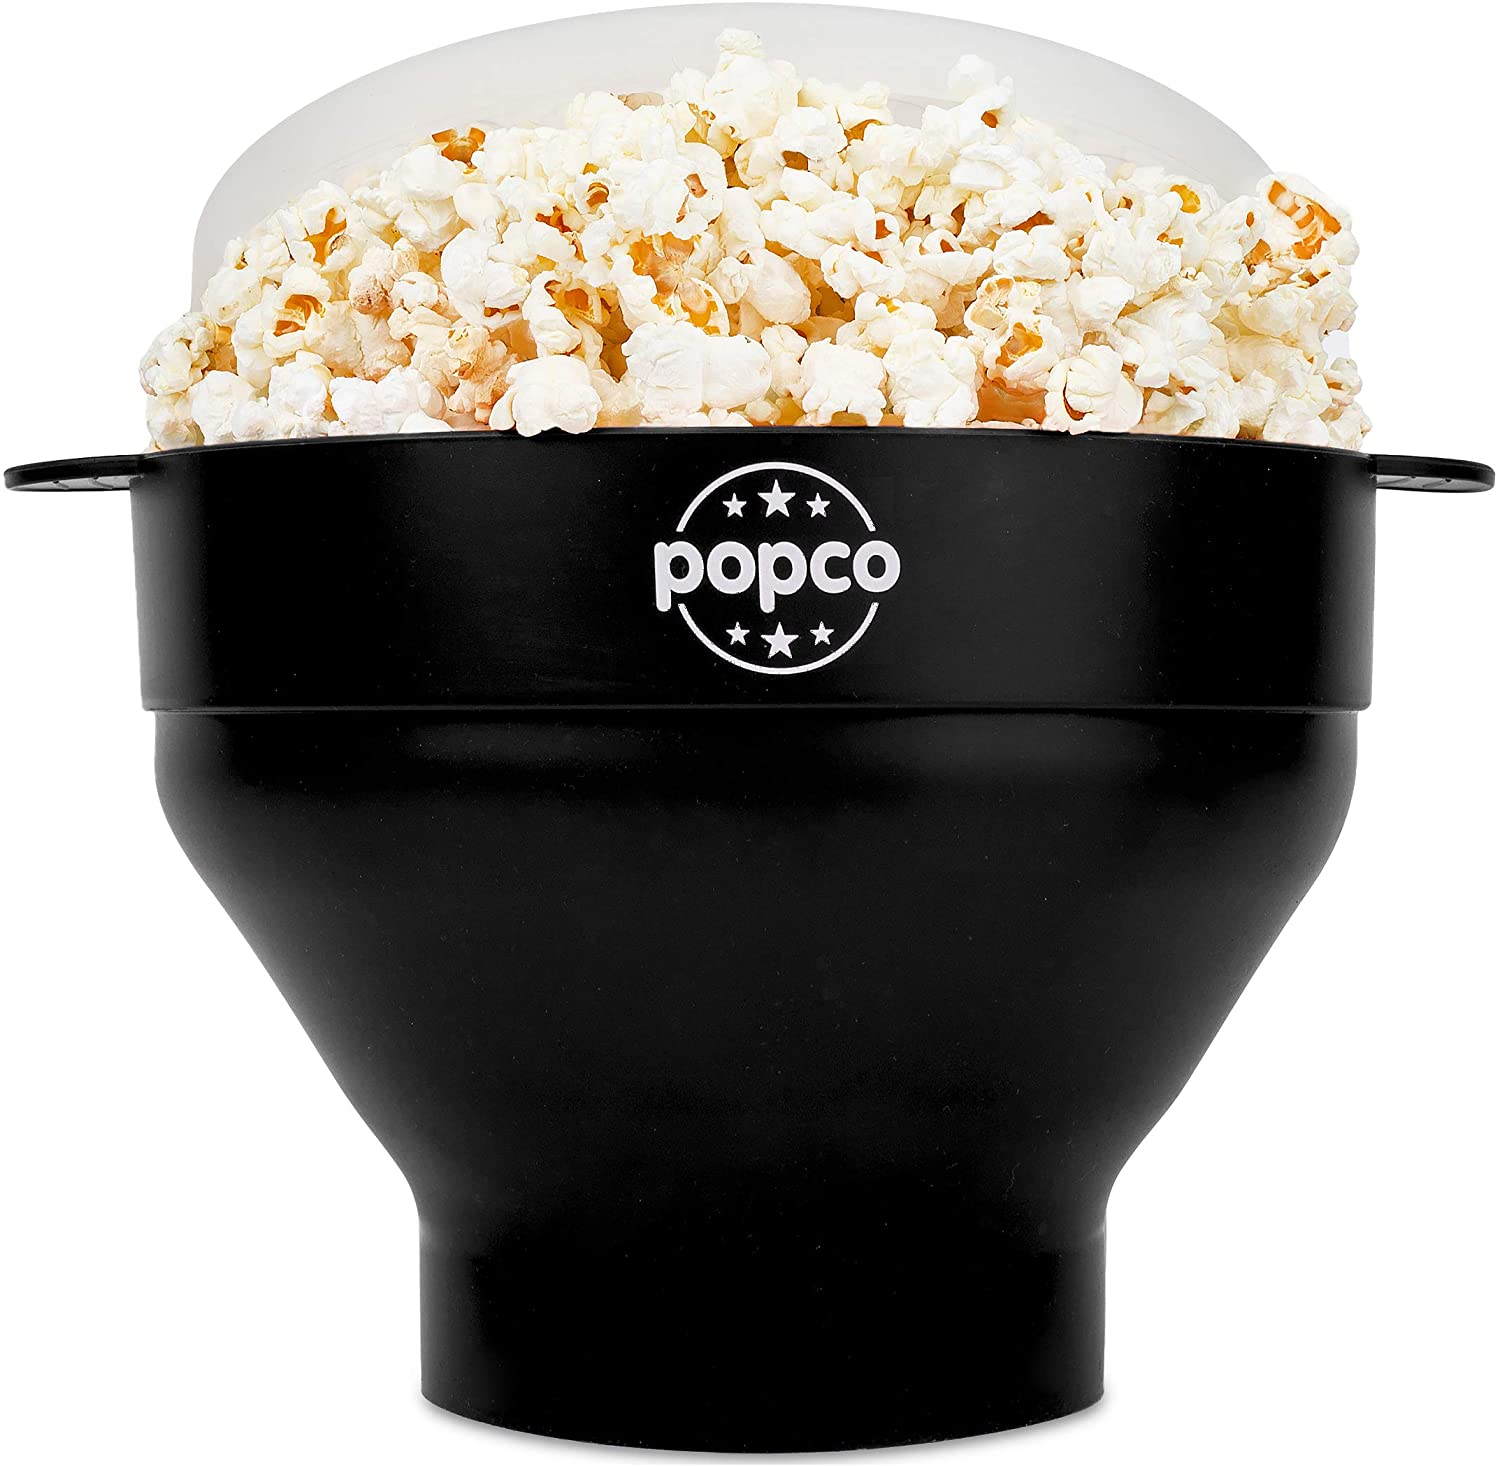 The Original Popco Silicone Microwave Popcorn Popper with Handles, Silicone Popcorn Maker, Collapsible Bowl Bpa Free and Dishwasher Safe - 10 Colors Available (Black)